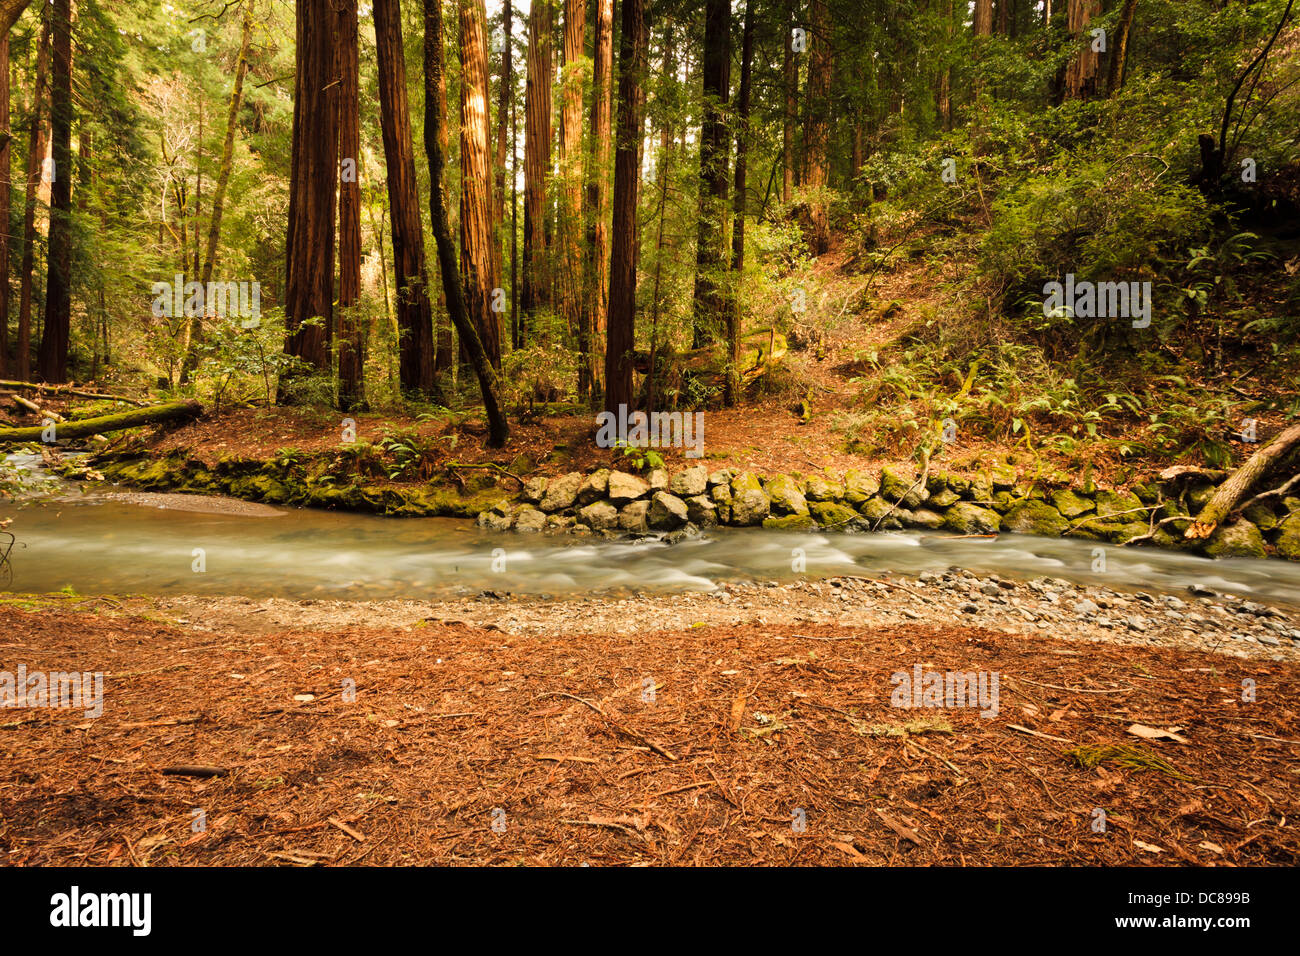 Gently flowing Redwood Creek crosses in front of coastal giant sequoia redwood trees in a forest environment dappled - Stock Image